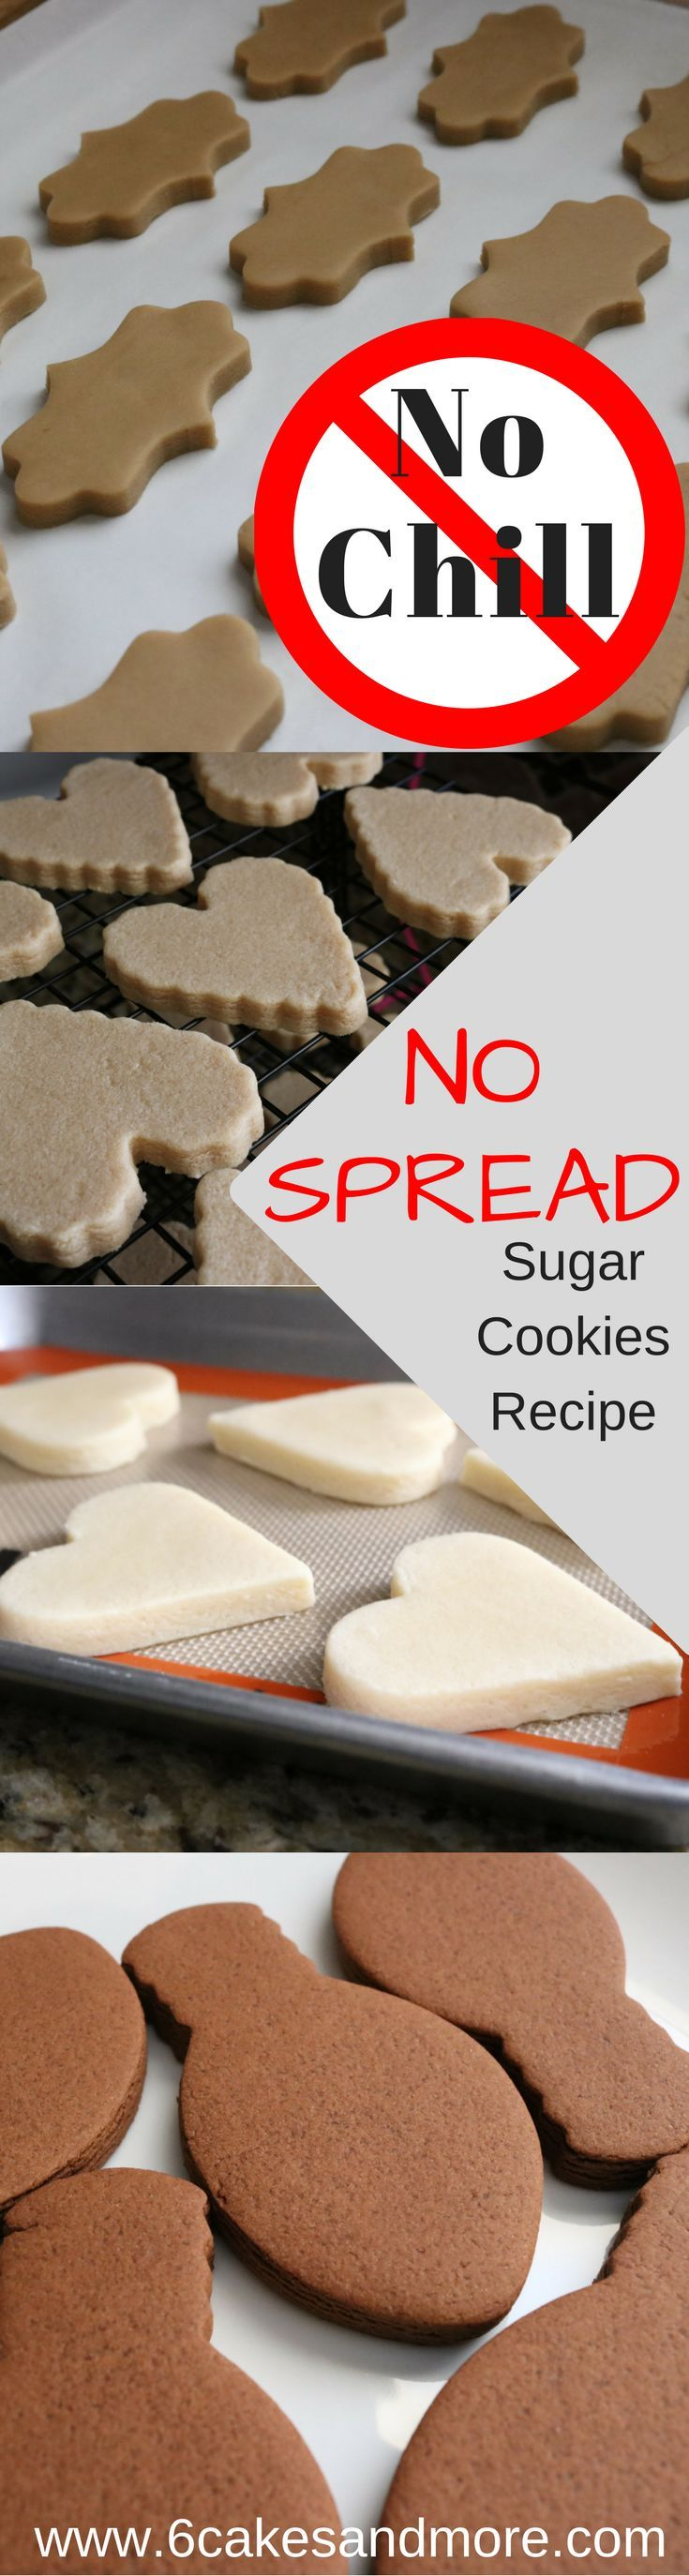 Foolproof No Chill No Spread Sugar Cookies ~ 6 Cakes & More, LLC